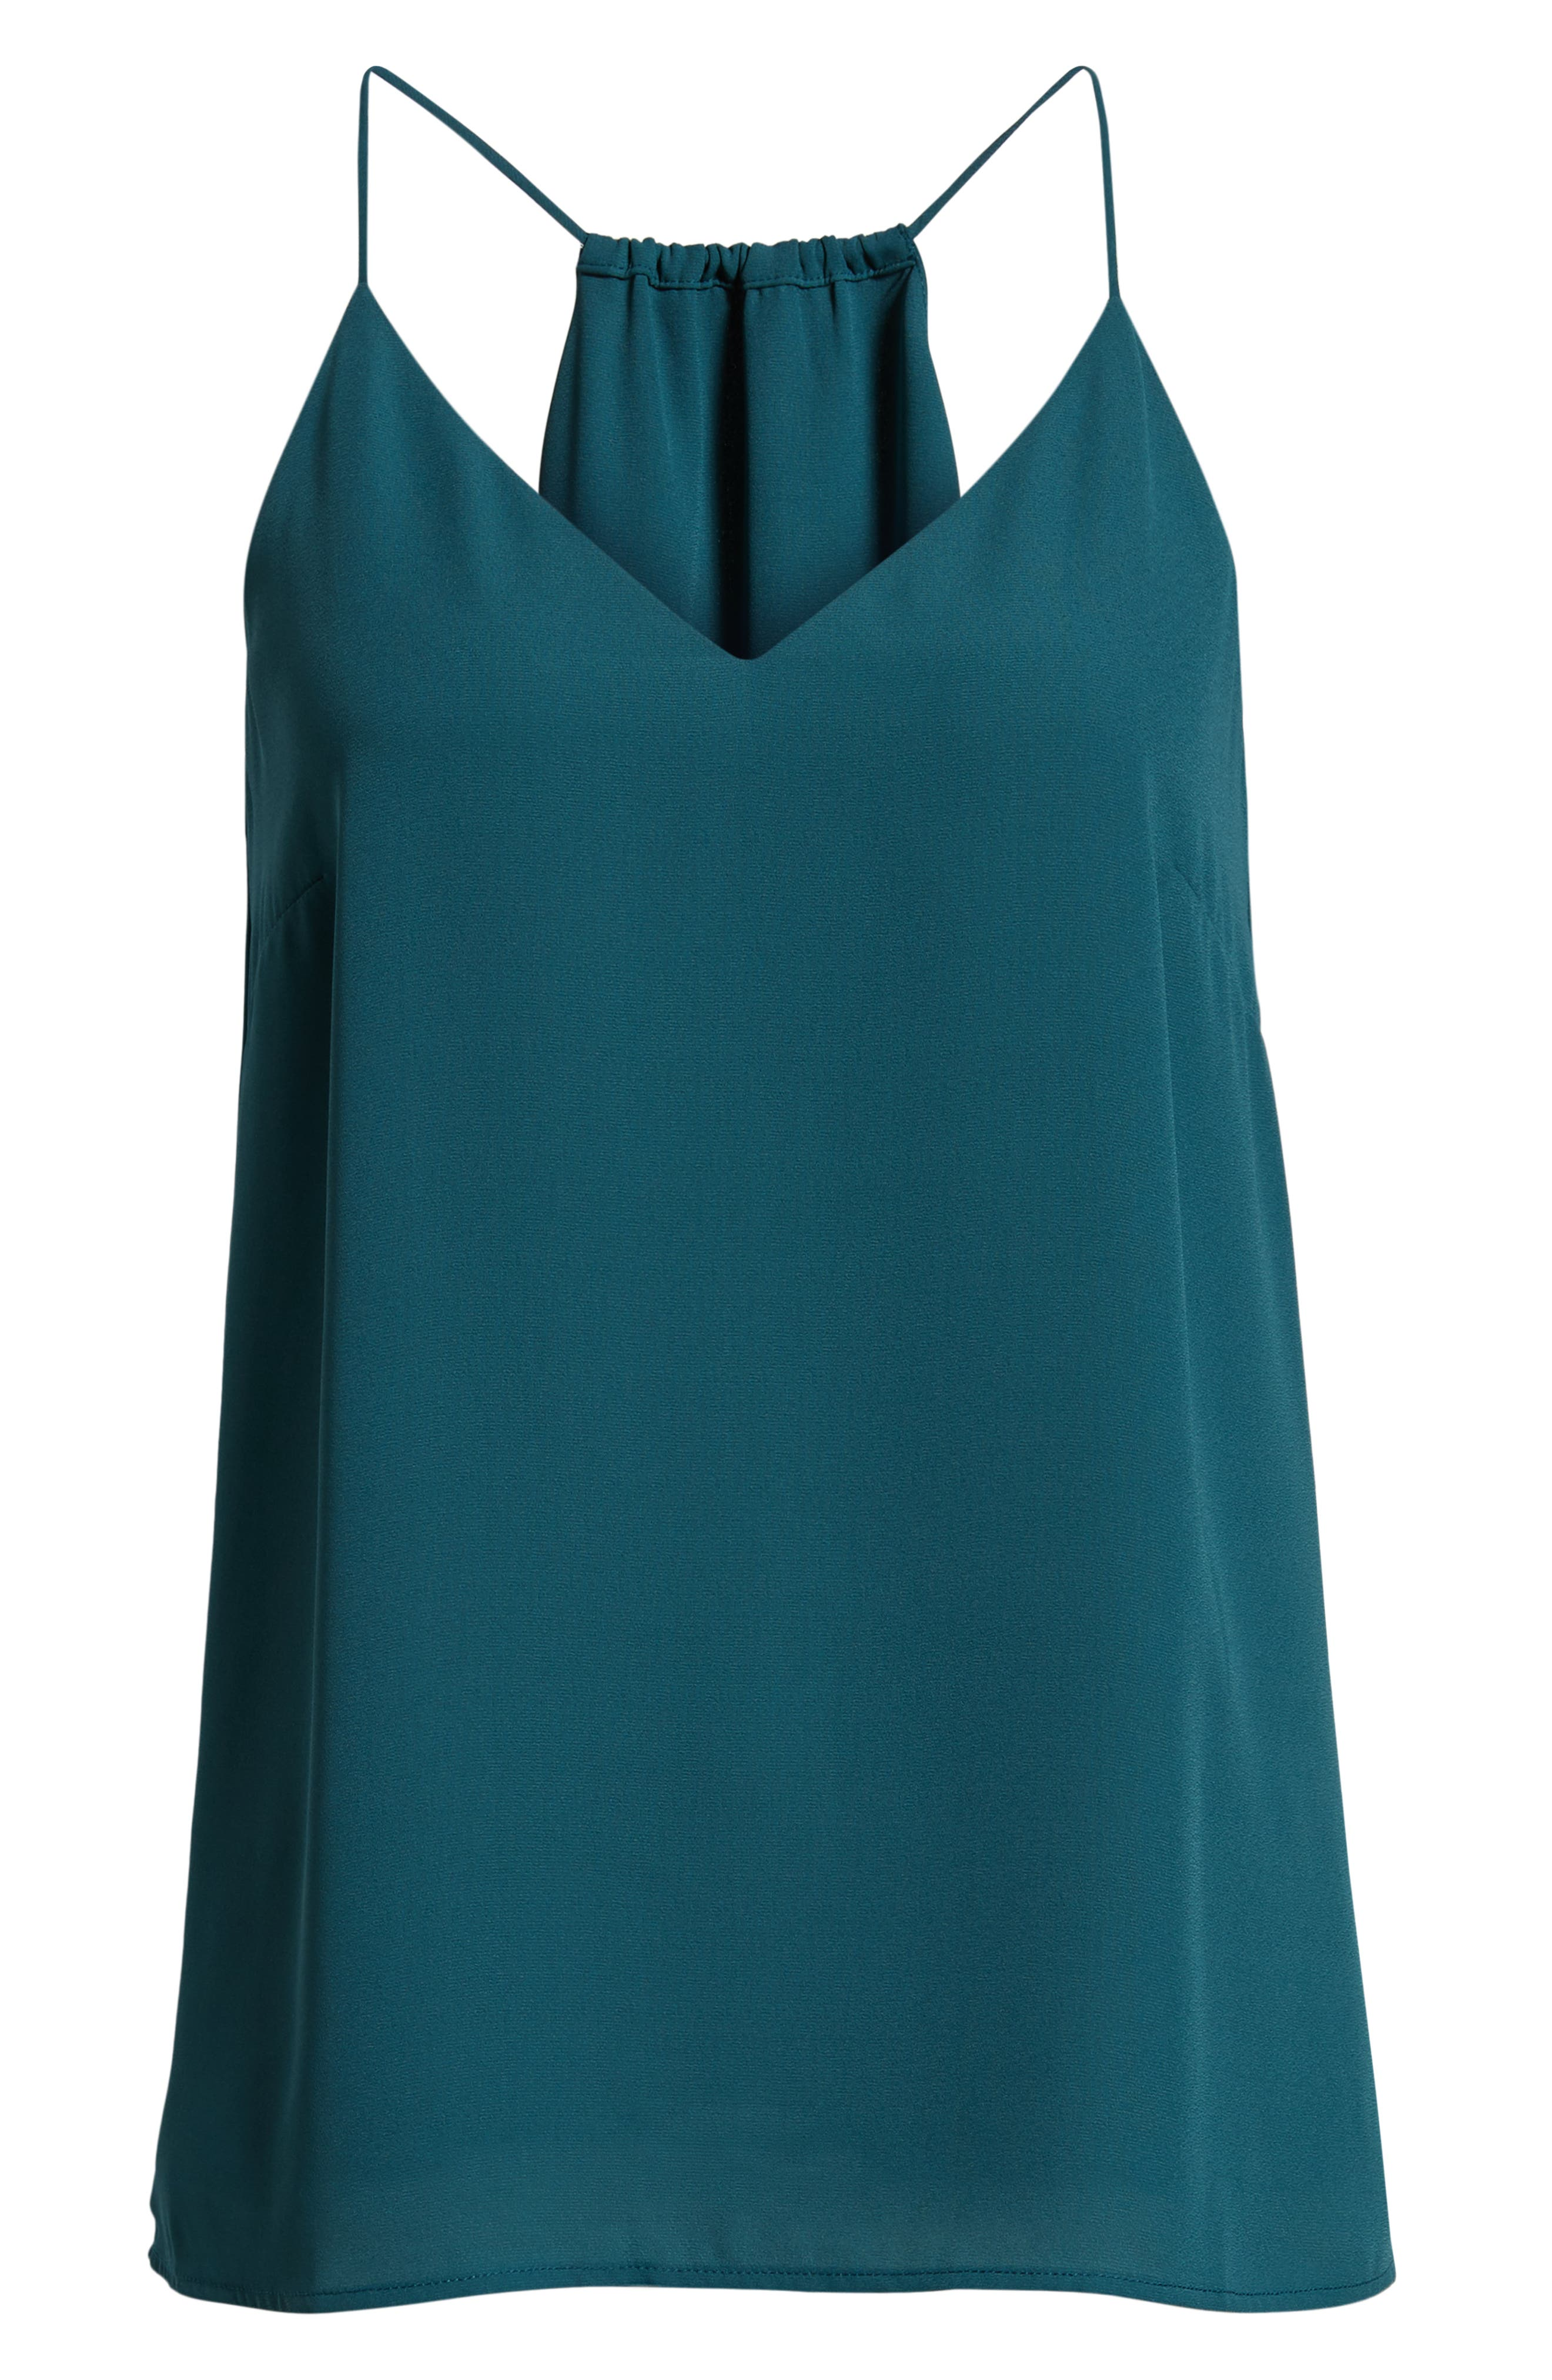 Strappy Tank,                             Alternate thumbnail 6, color,                             TEAL BALSAM